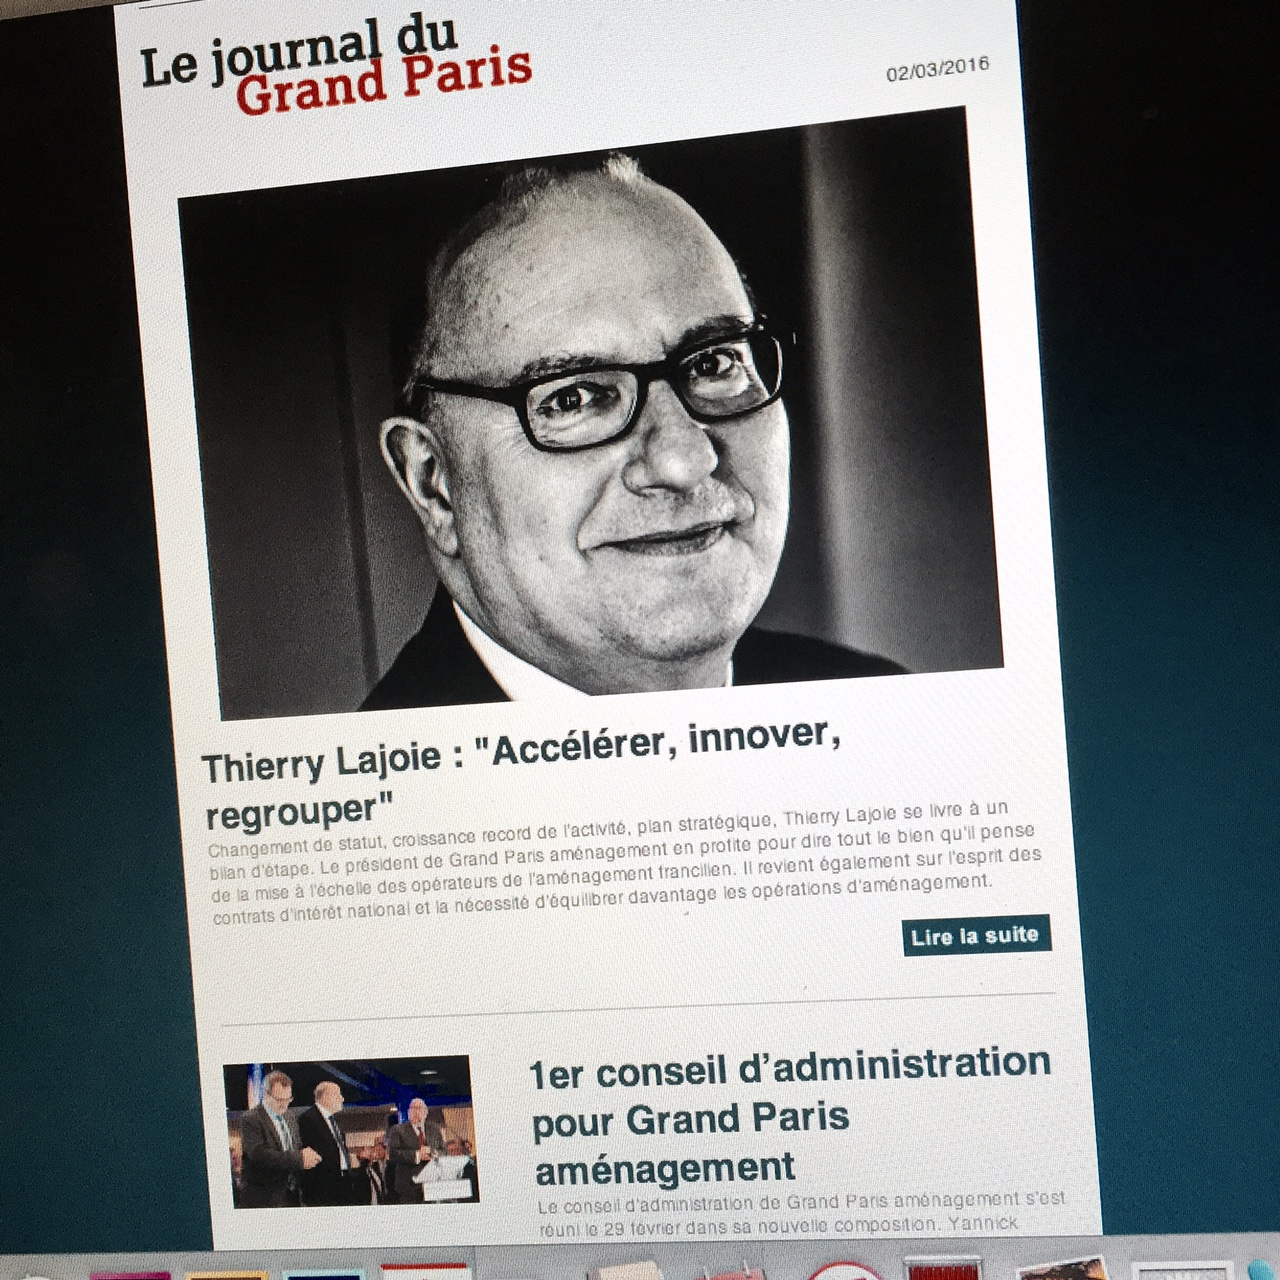 Accélérer innover regrouper ITV Thierry Lajoie